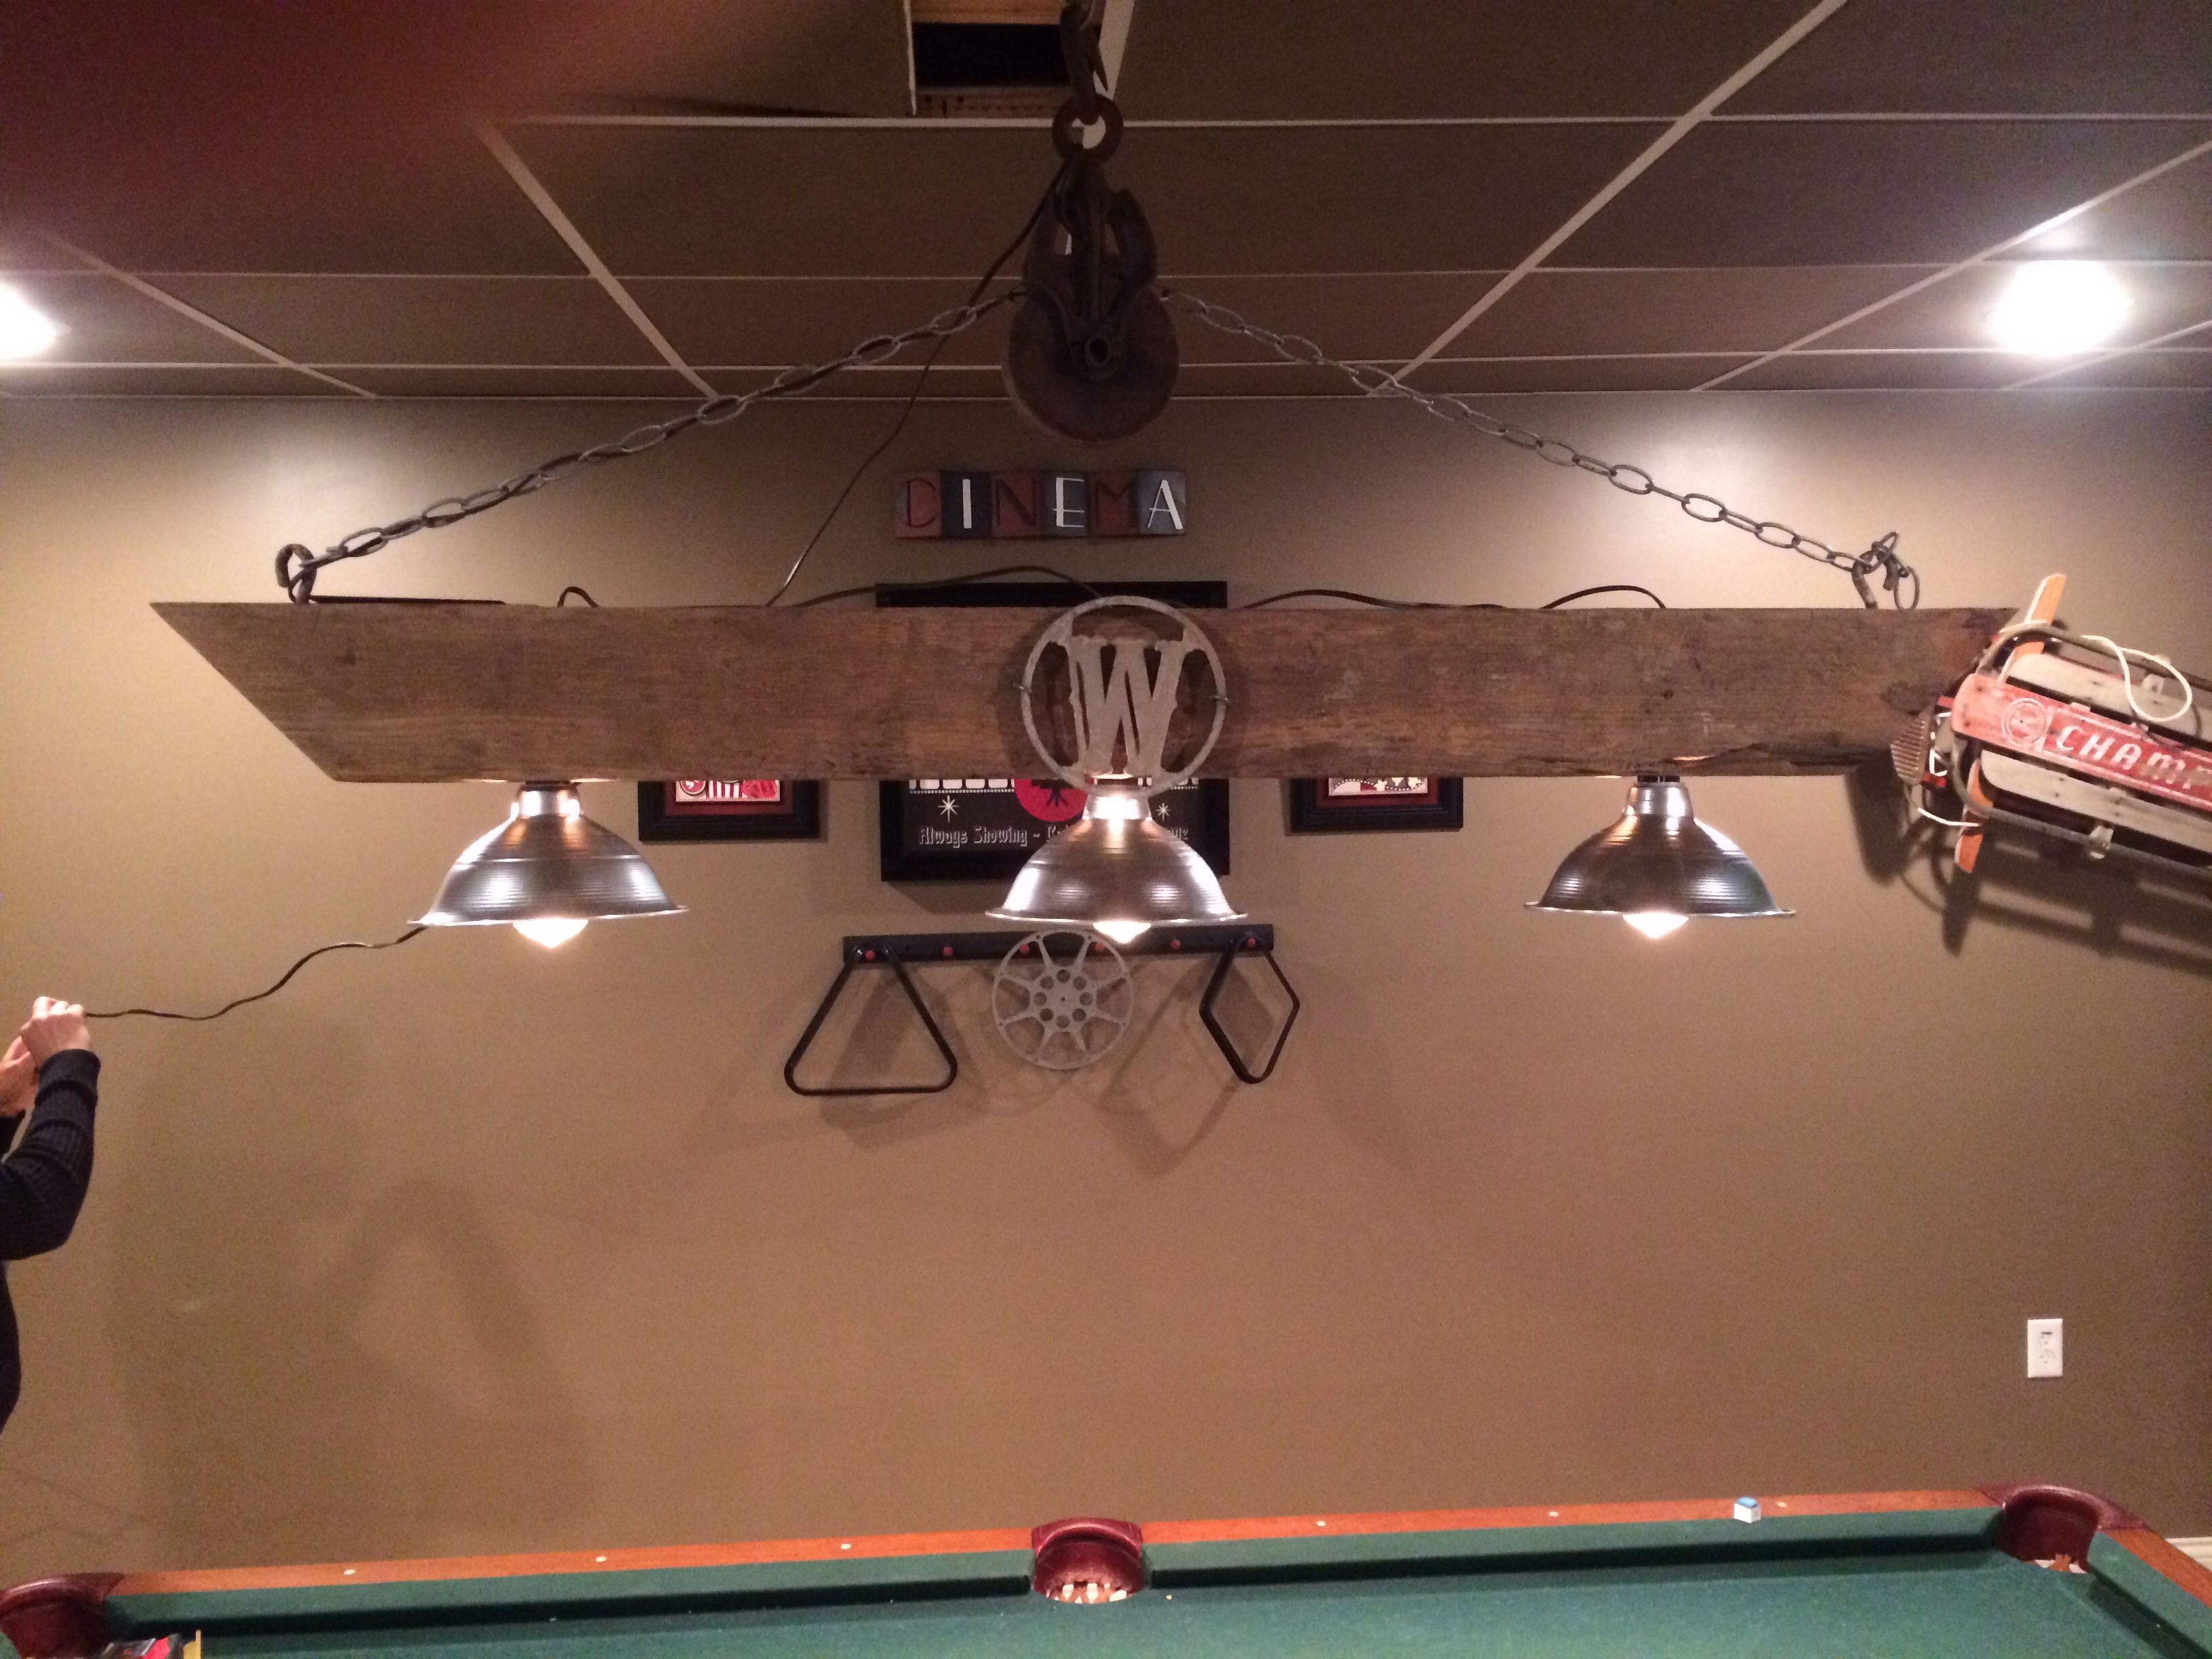 Pool table light project I just completed. Very happy with